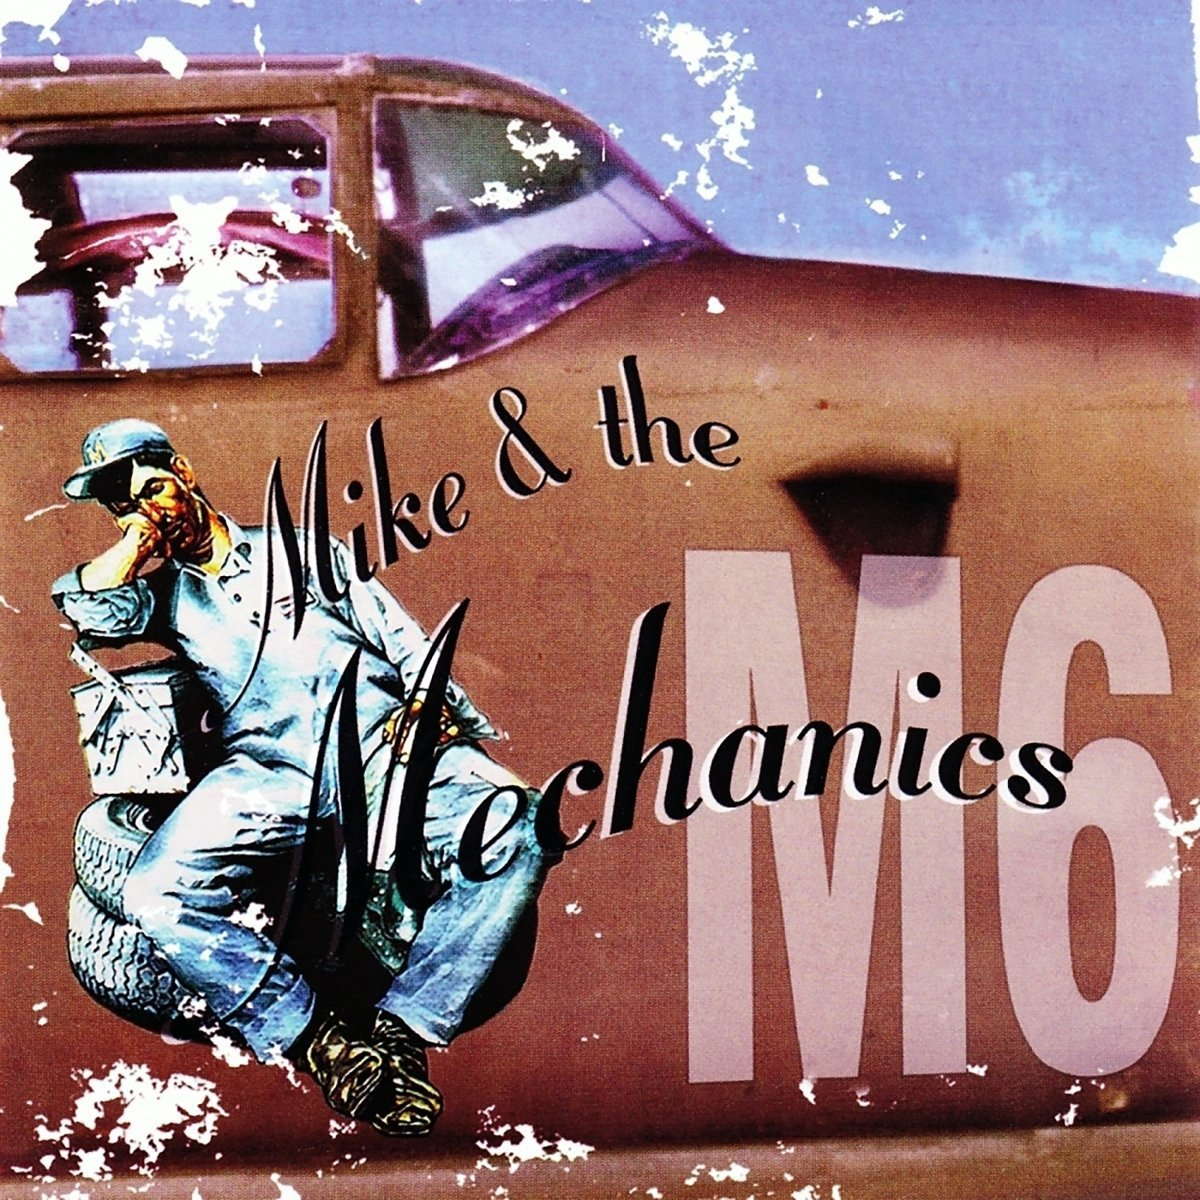 CD : Mike & the Mechanics - Mike & The Mechanics M6 (United Kingdom - Import)